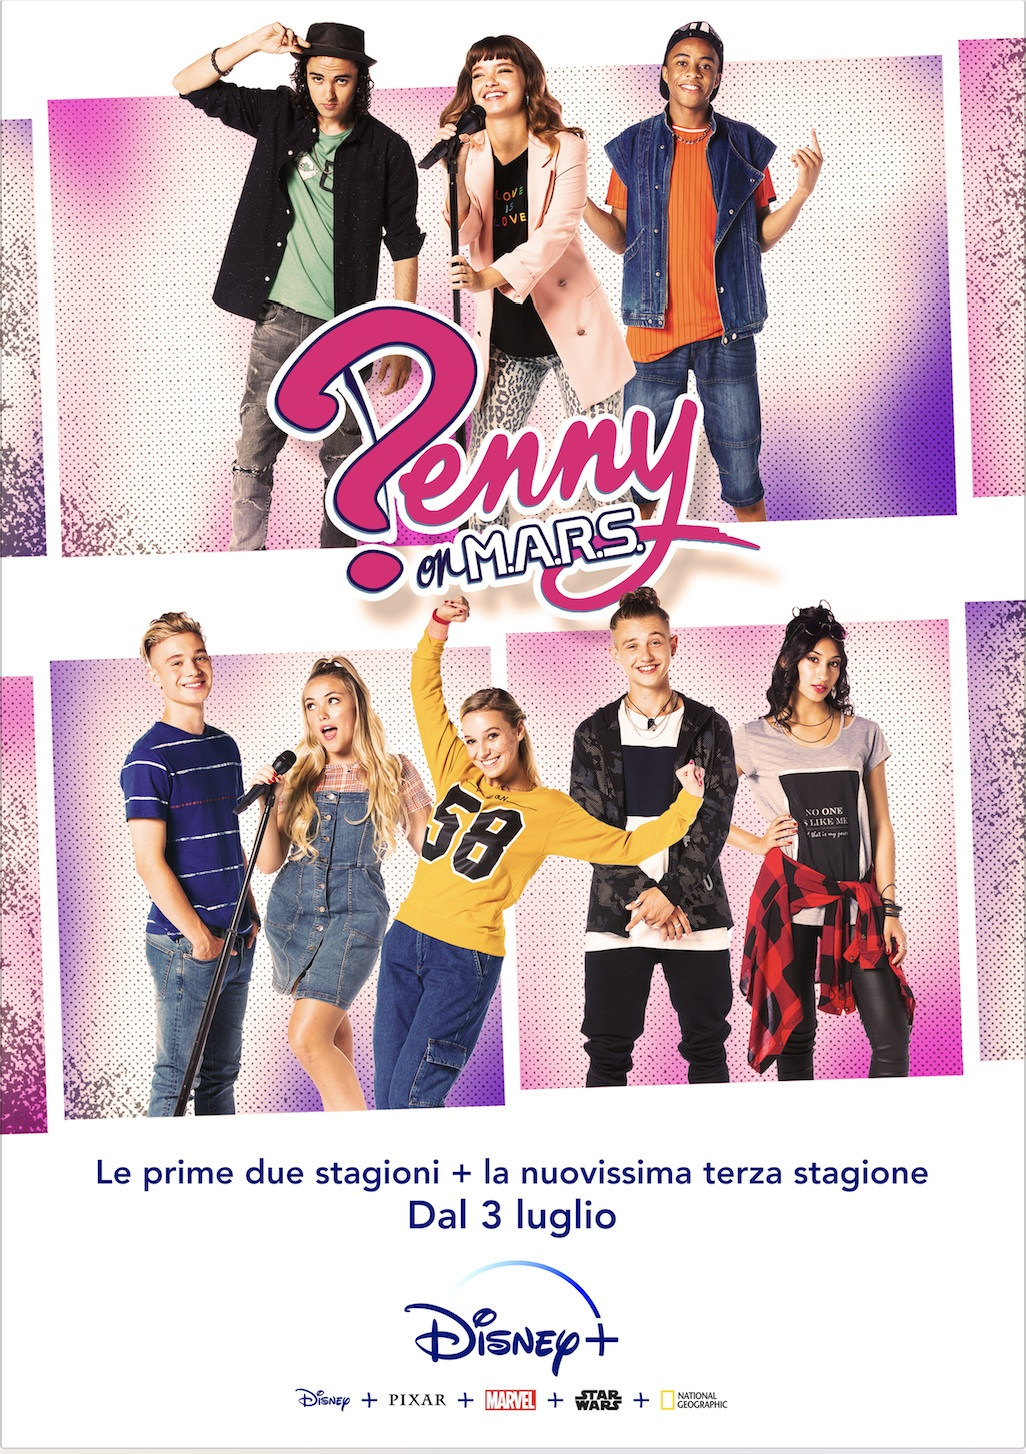 Penny on M.A.R.S. arriva in streaming su Disney+